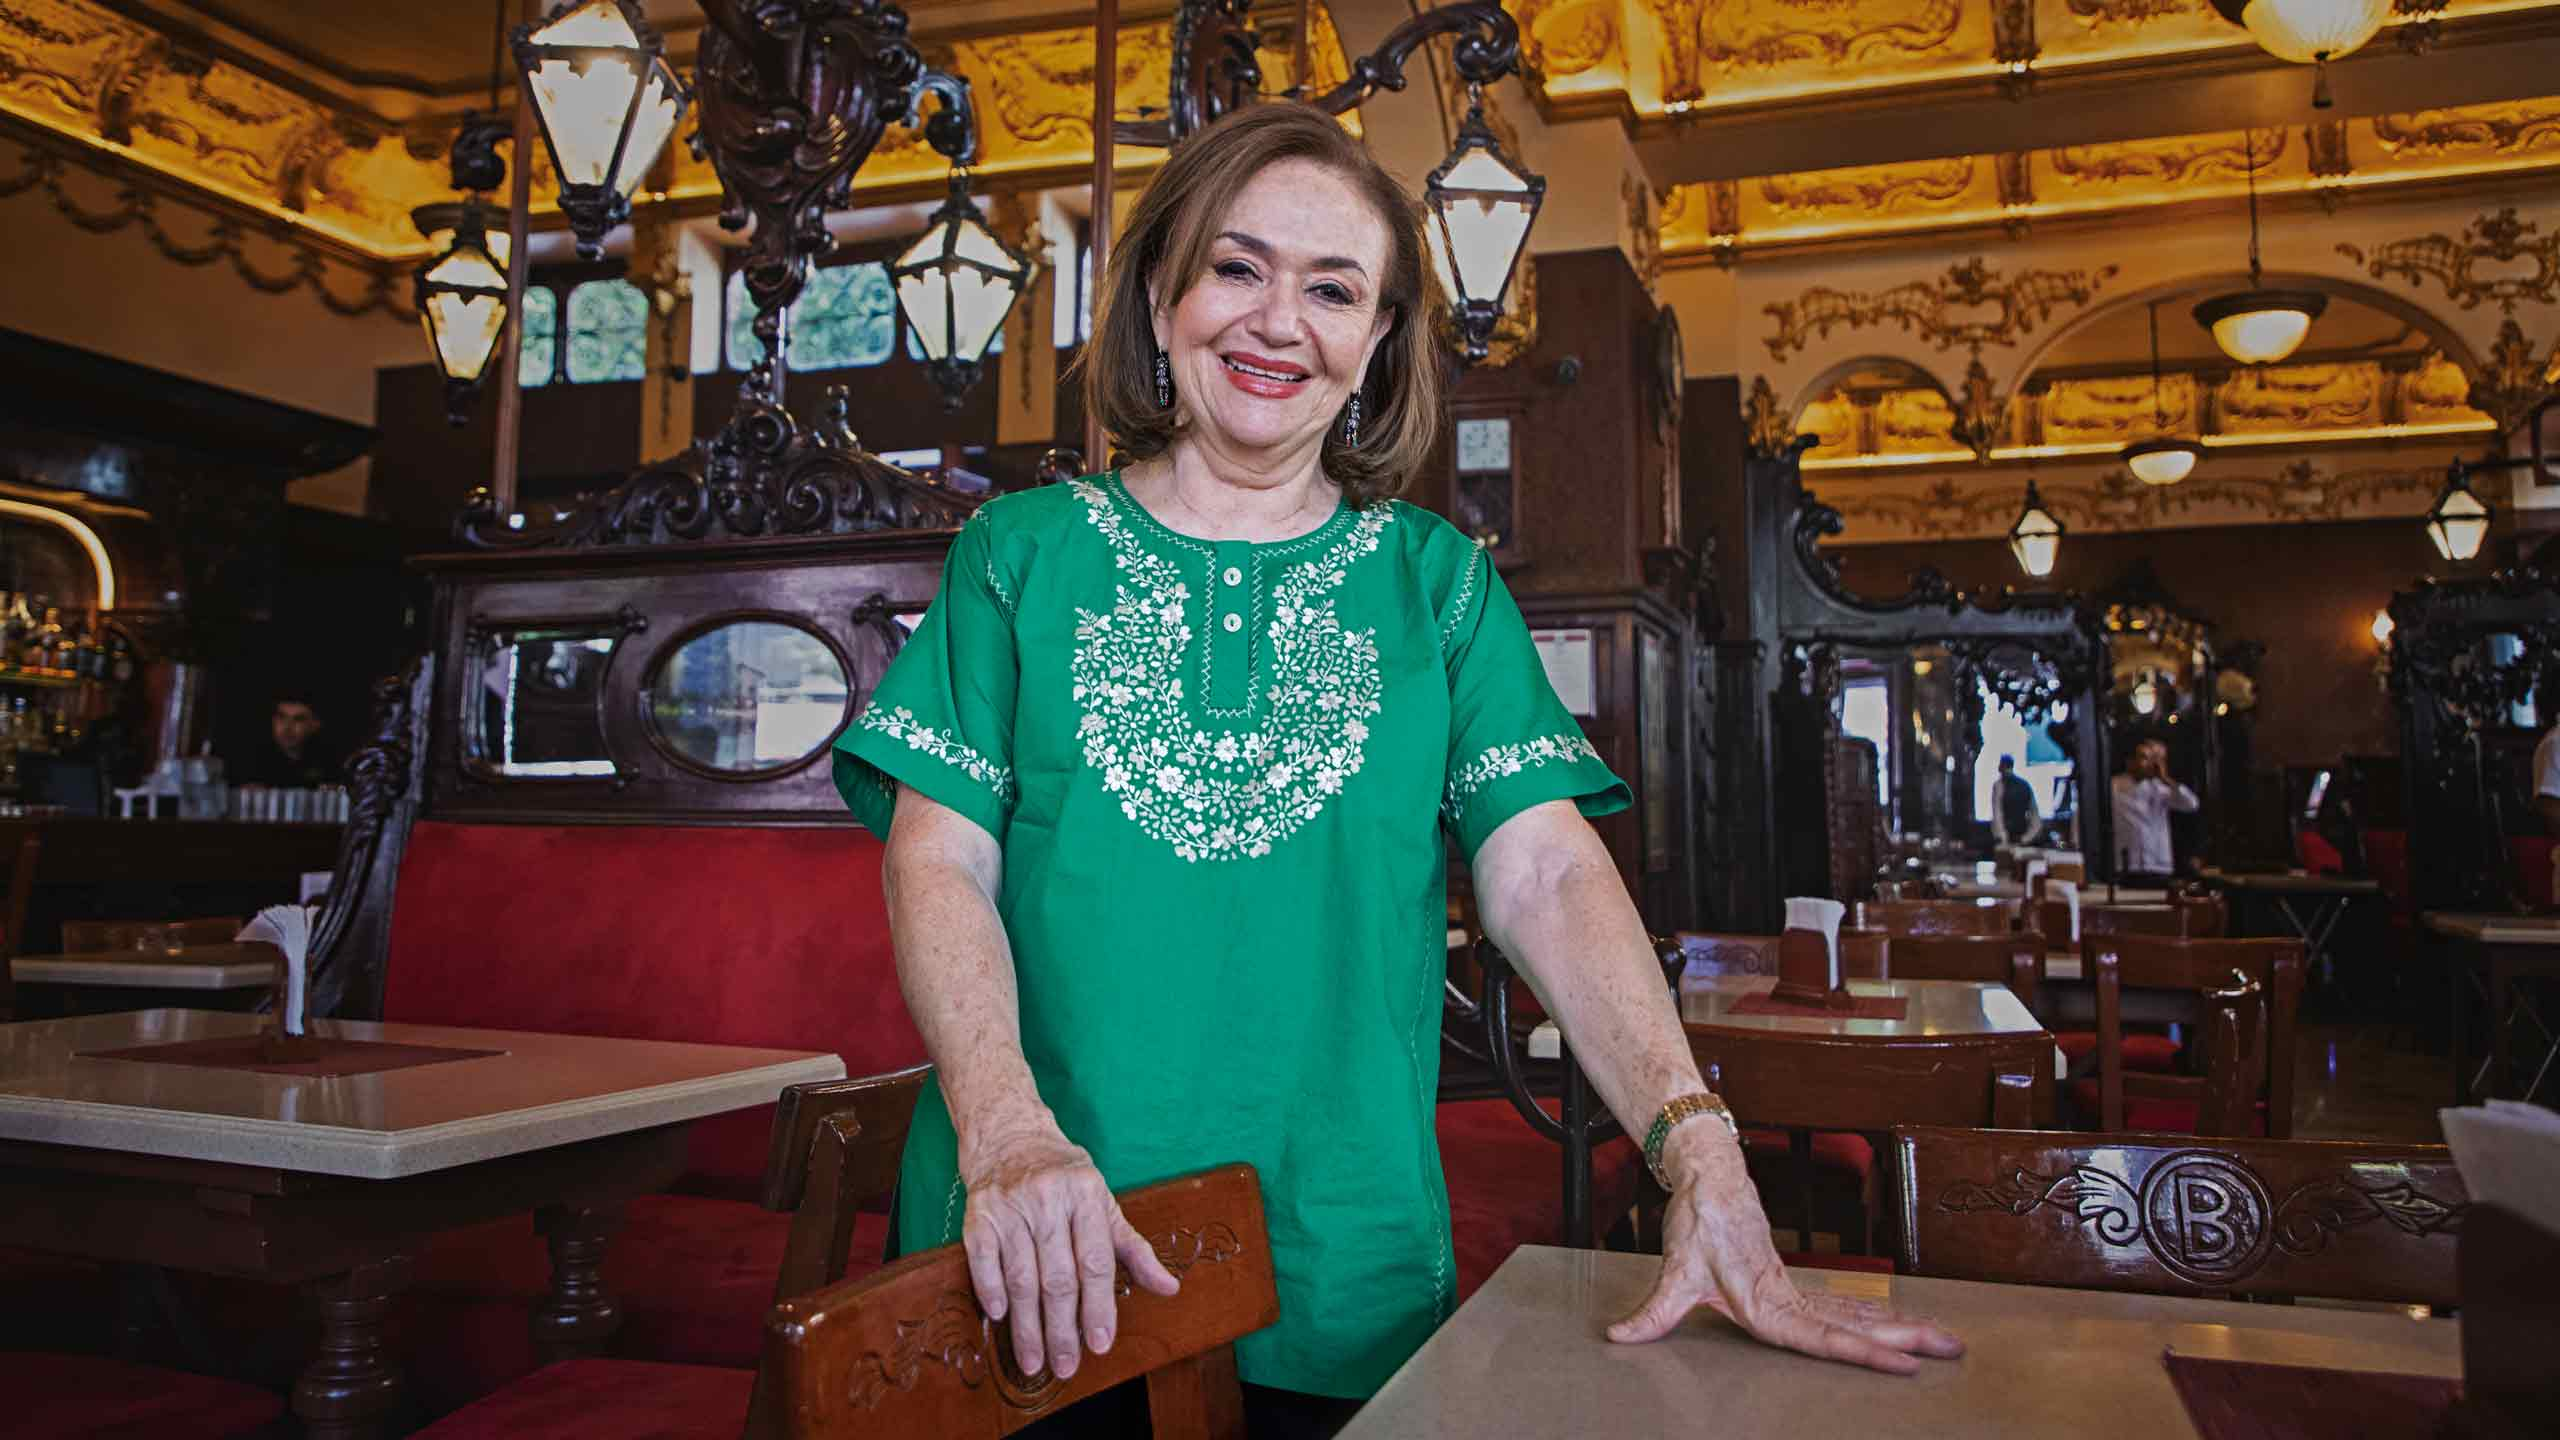 margarita carrillo arronte